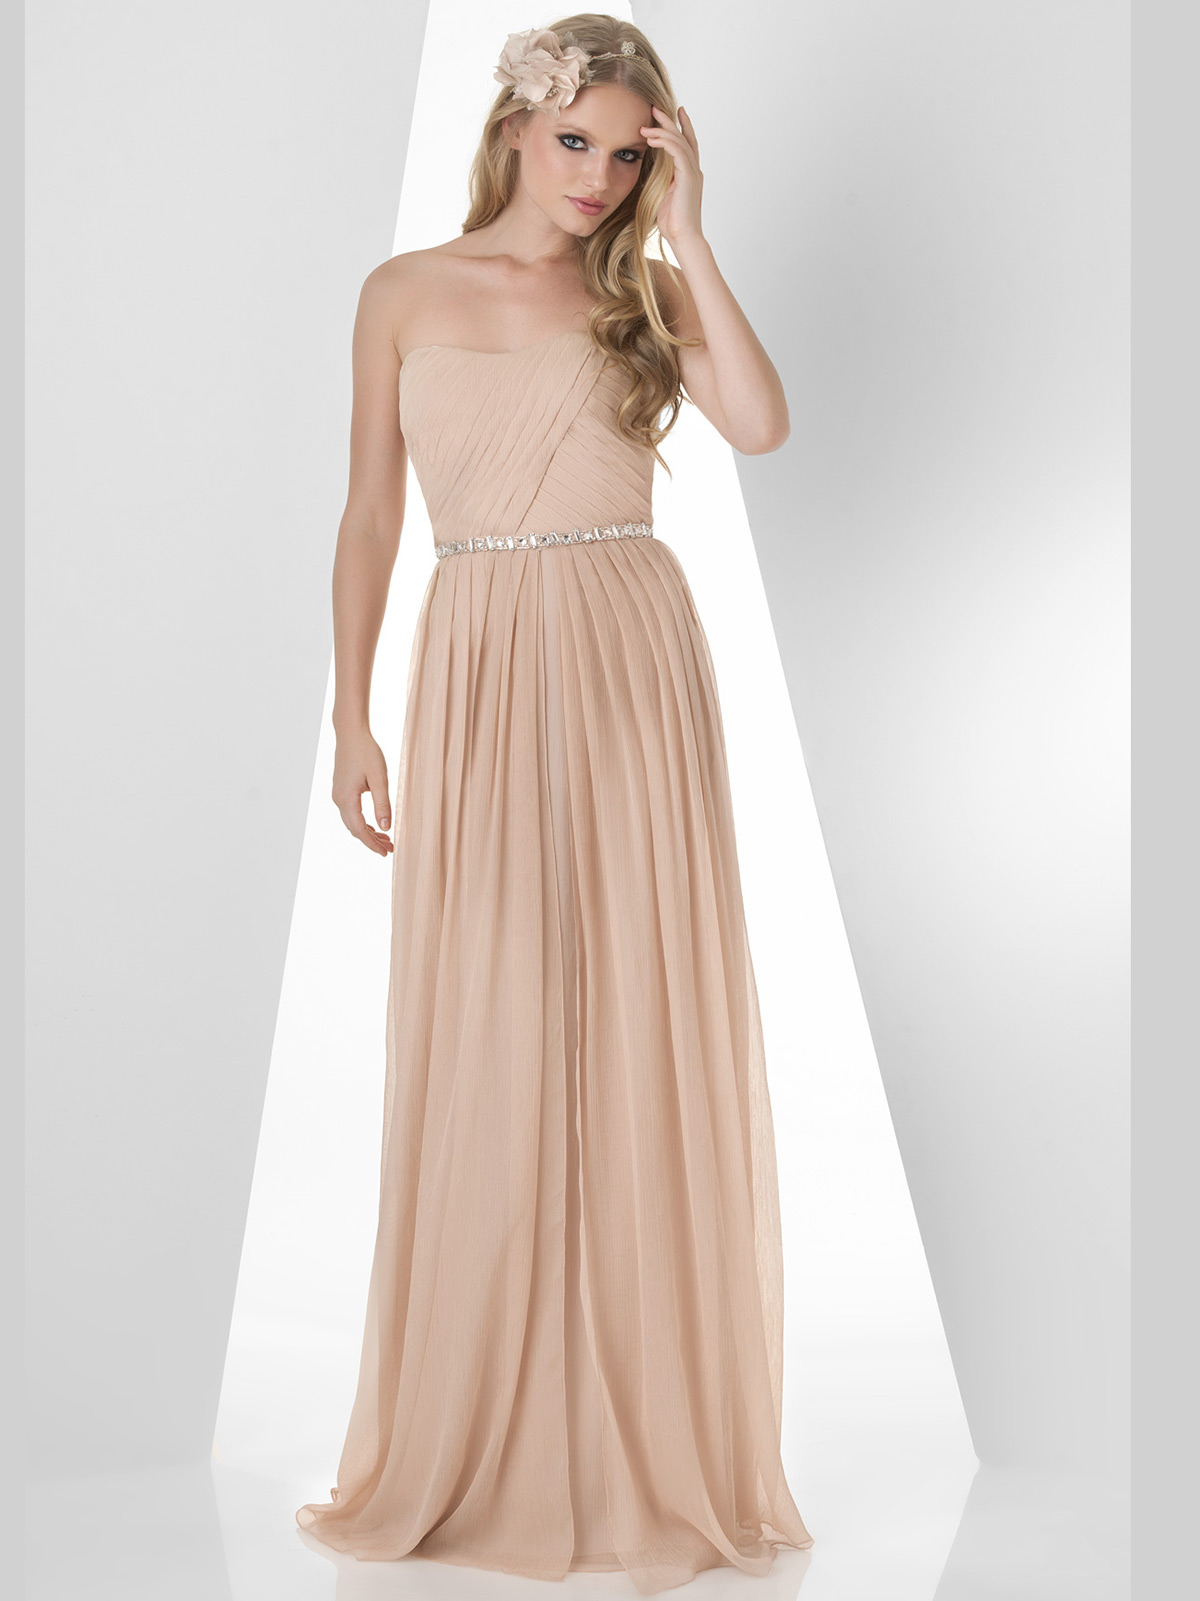 Bari jay bridesmaids dress 880 dimitradesigns strapless pleated bridesmaid dress bari jay 880 ombrellifo Image collections